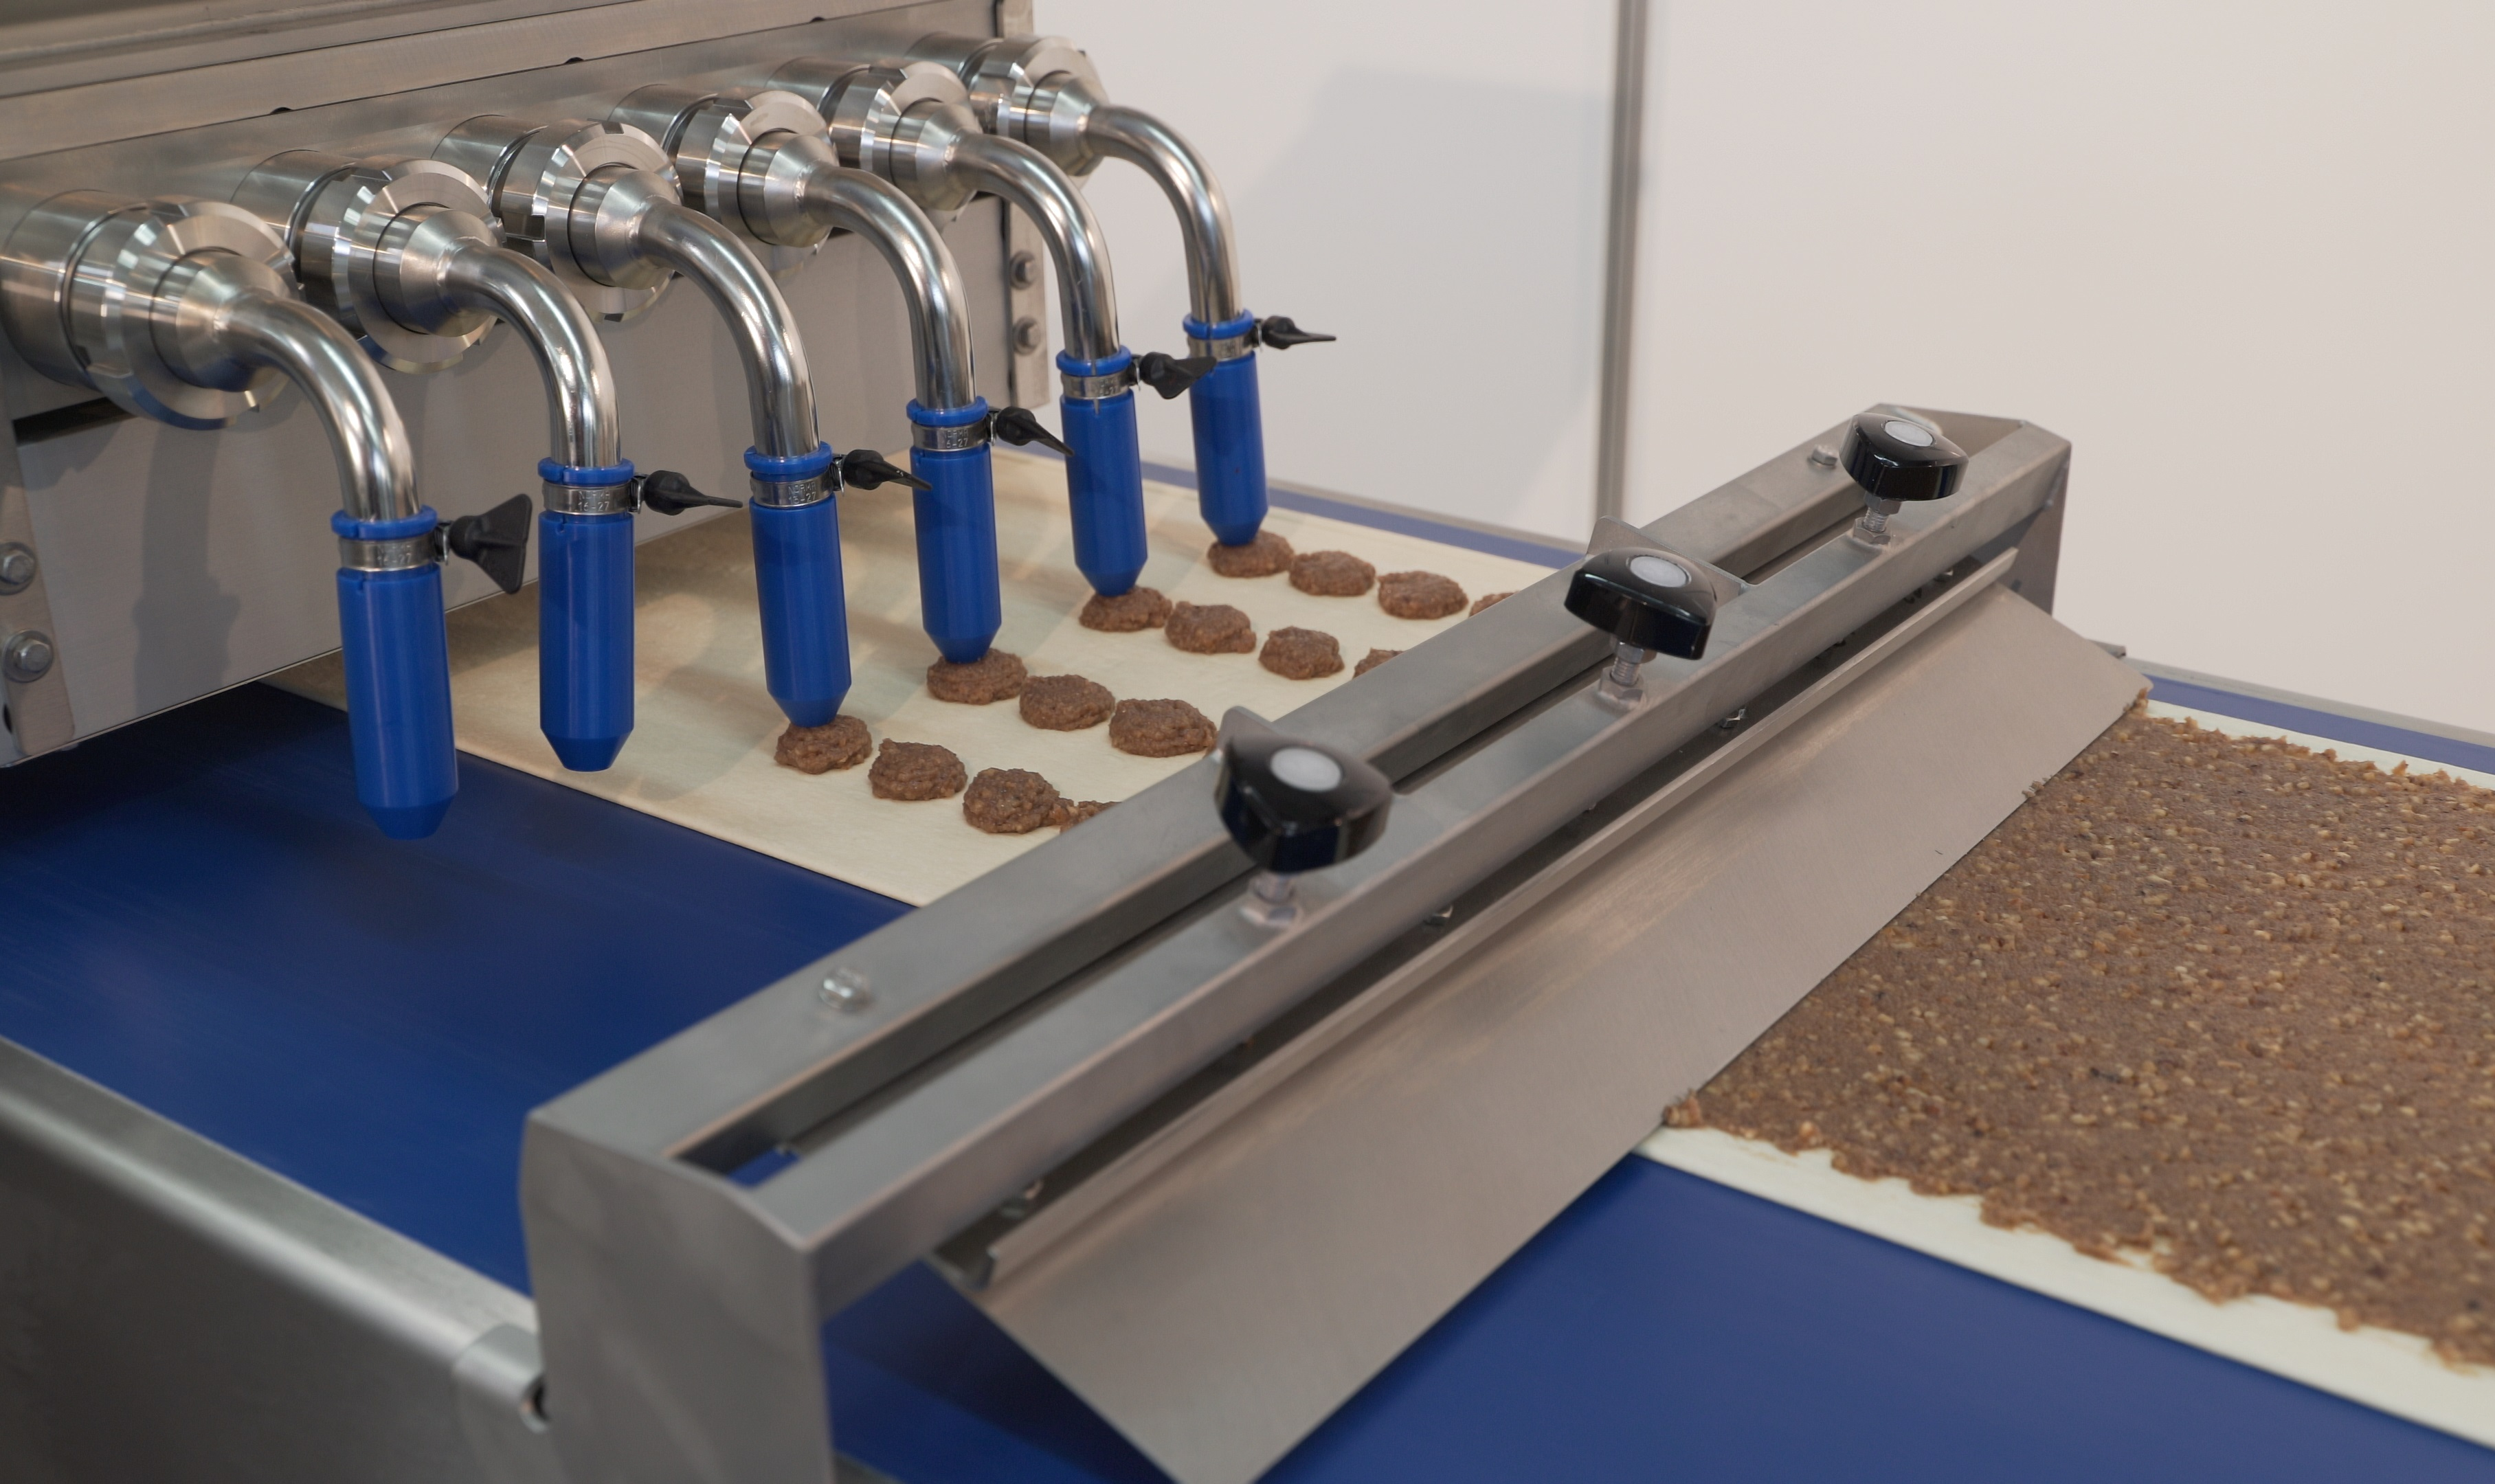 FRITSCH-bakery-machines-pastry-make-up-line-EASYLINE-filling-units